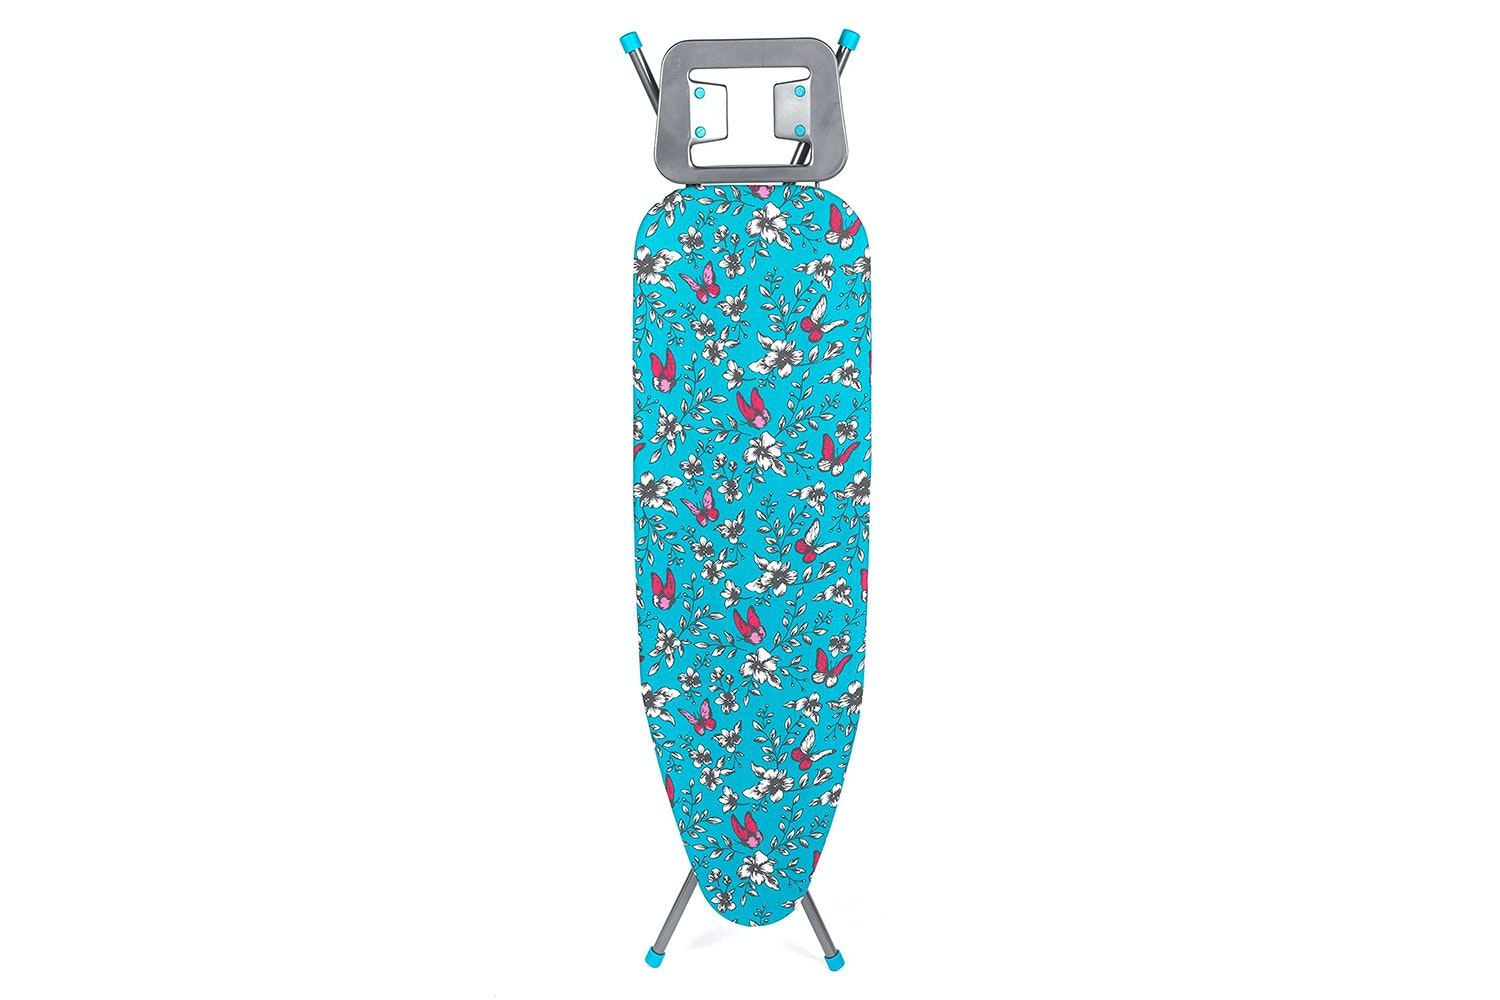 Beldray Ironing Board | 110 X 33 CM